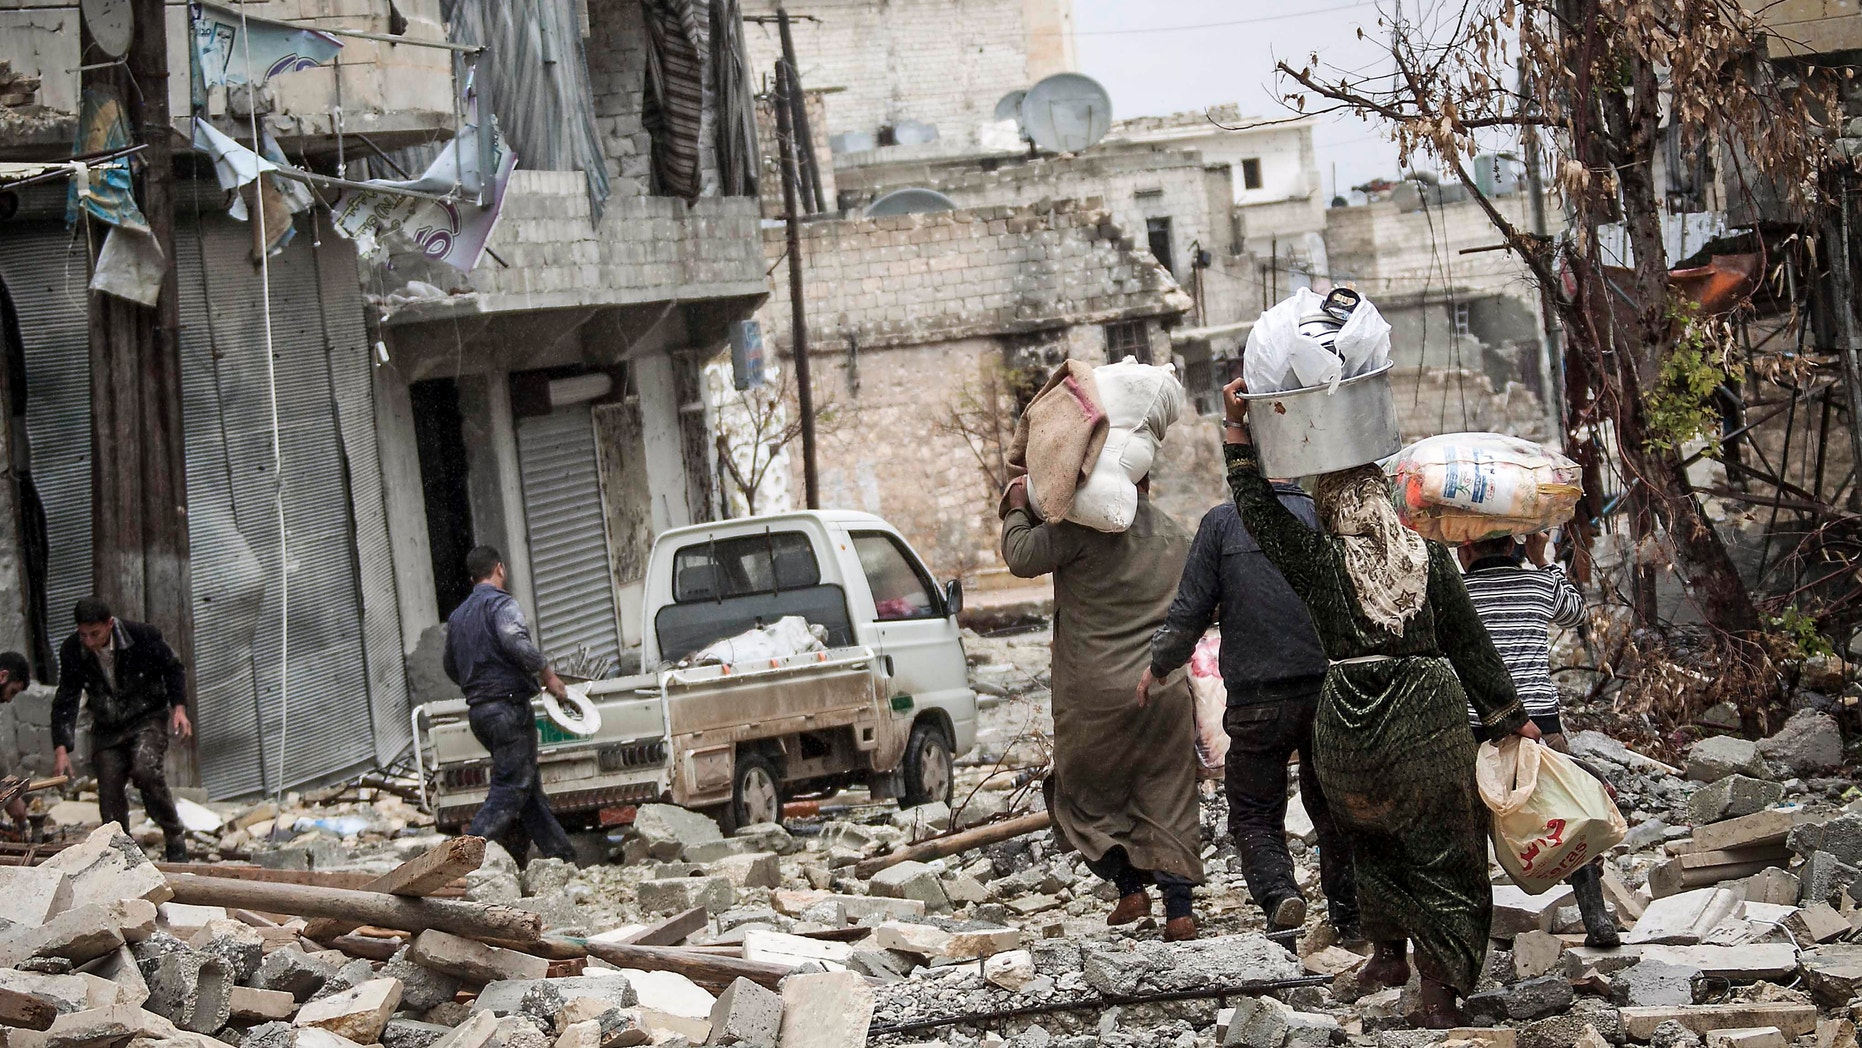 Dec. 11, 2012 - Syrian residents carry their belongings after their homes were damaged due to fighting between Free Syrian Army fighters and government forces in Aleppo, Syria.